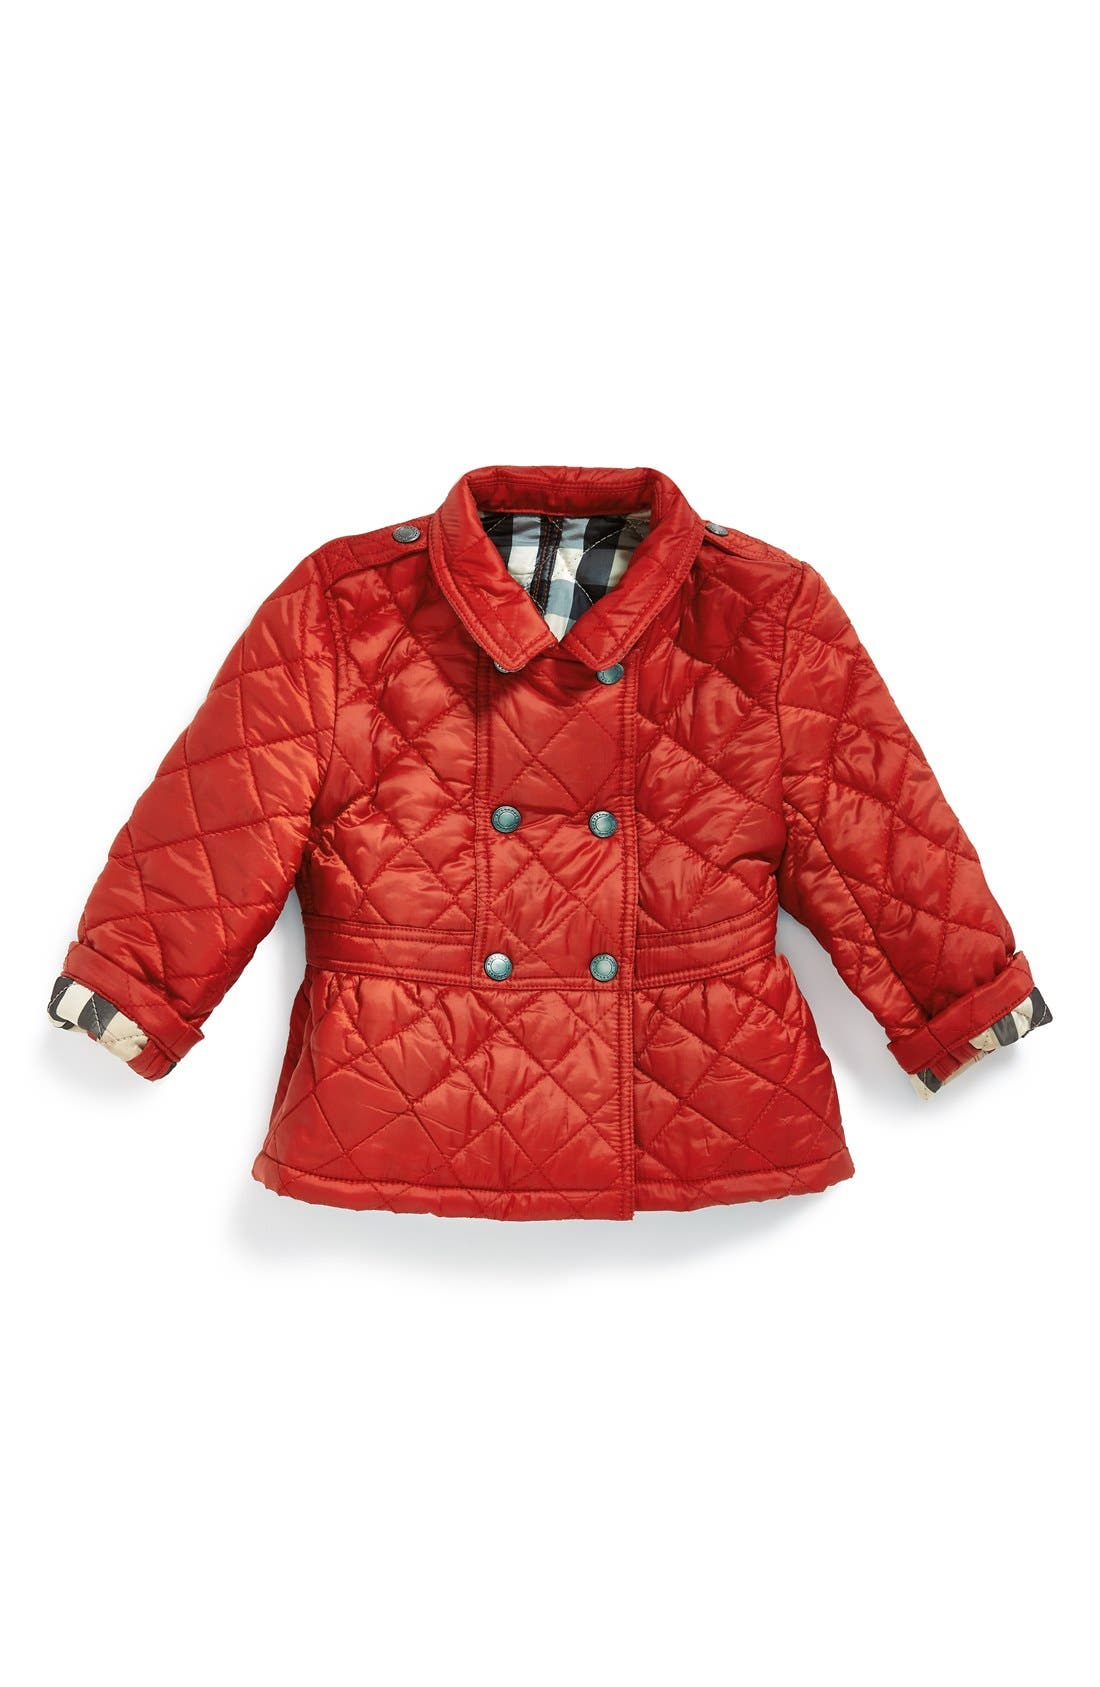 Alternate Image 1 Selected - Burberry Water Resistant Quilted Nylon Jacket (Baby Girls)